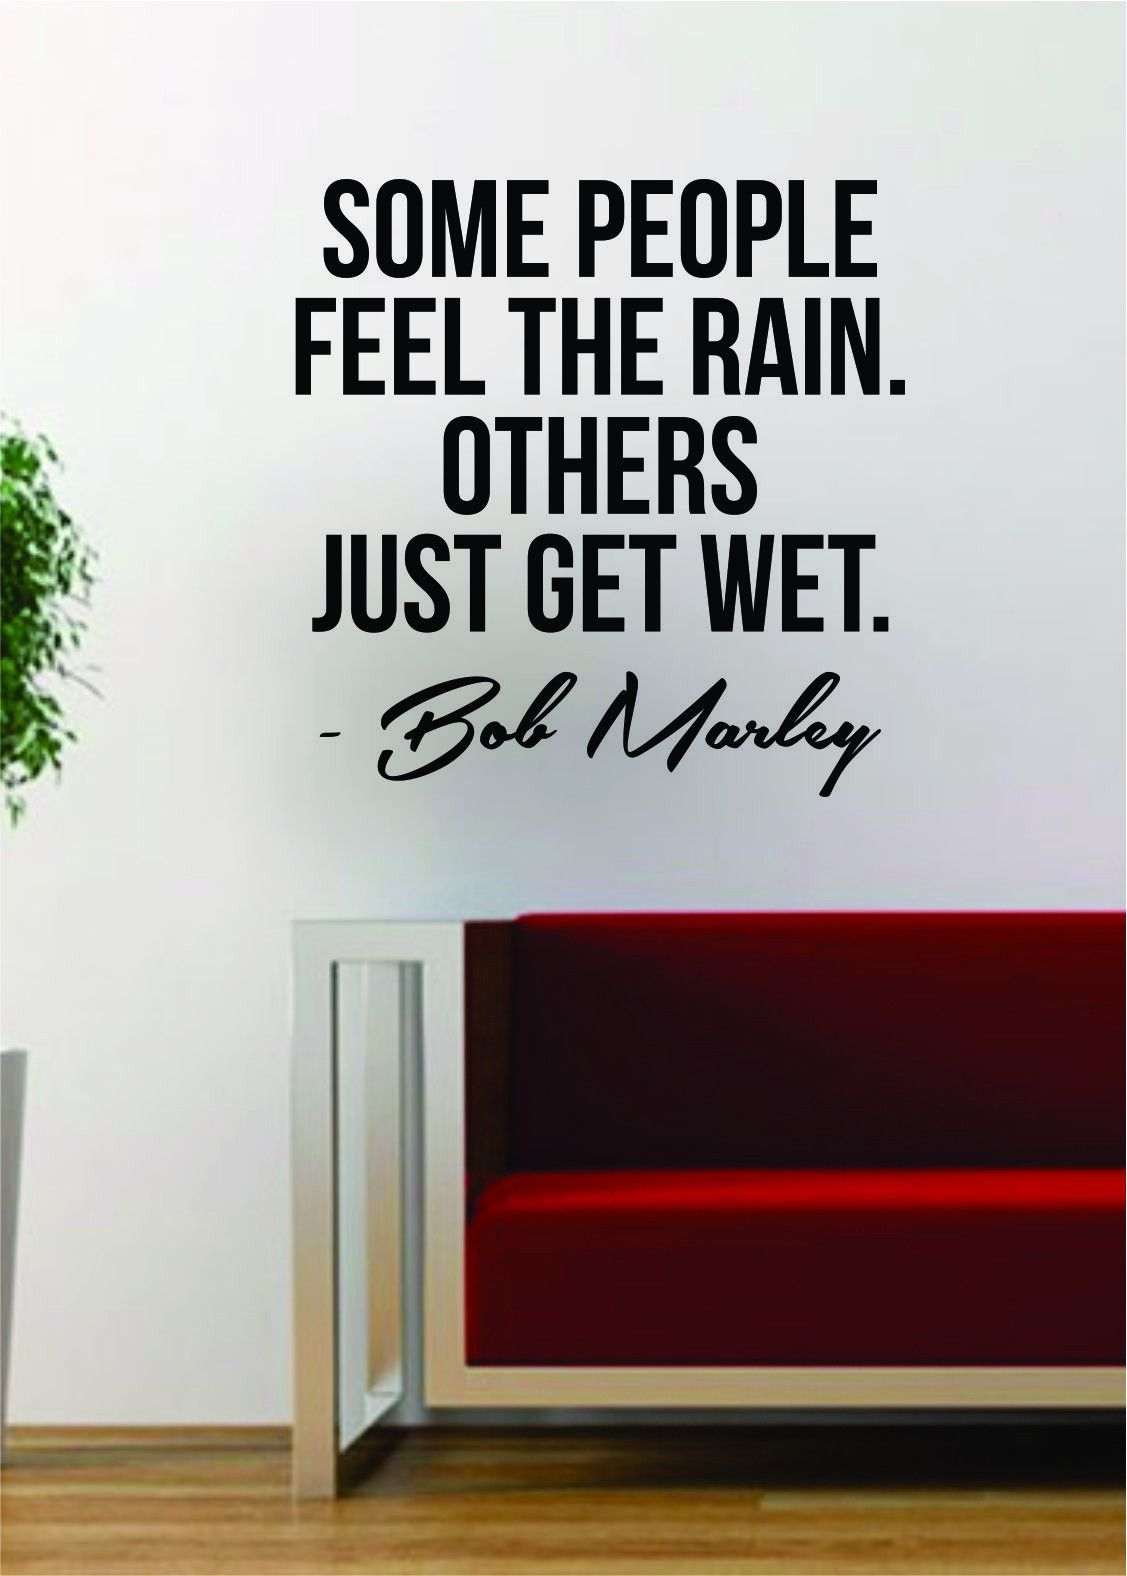 Bob marley some people feel the rain wall decal vinyl art sticker bob marley some people feel the rain wall decal vinyl art sticker music reggae lyrics inspirational amipublicfo Images